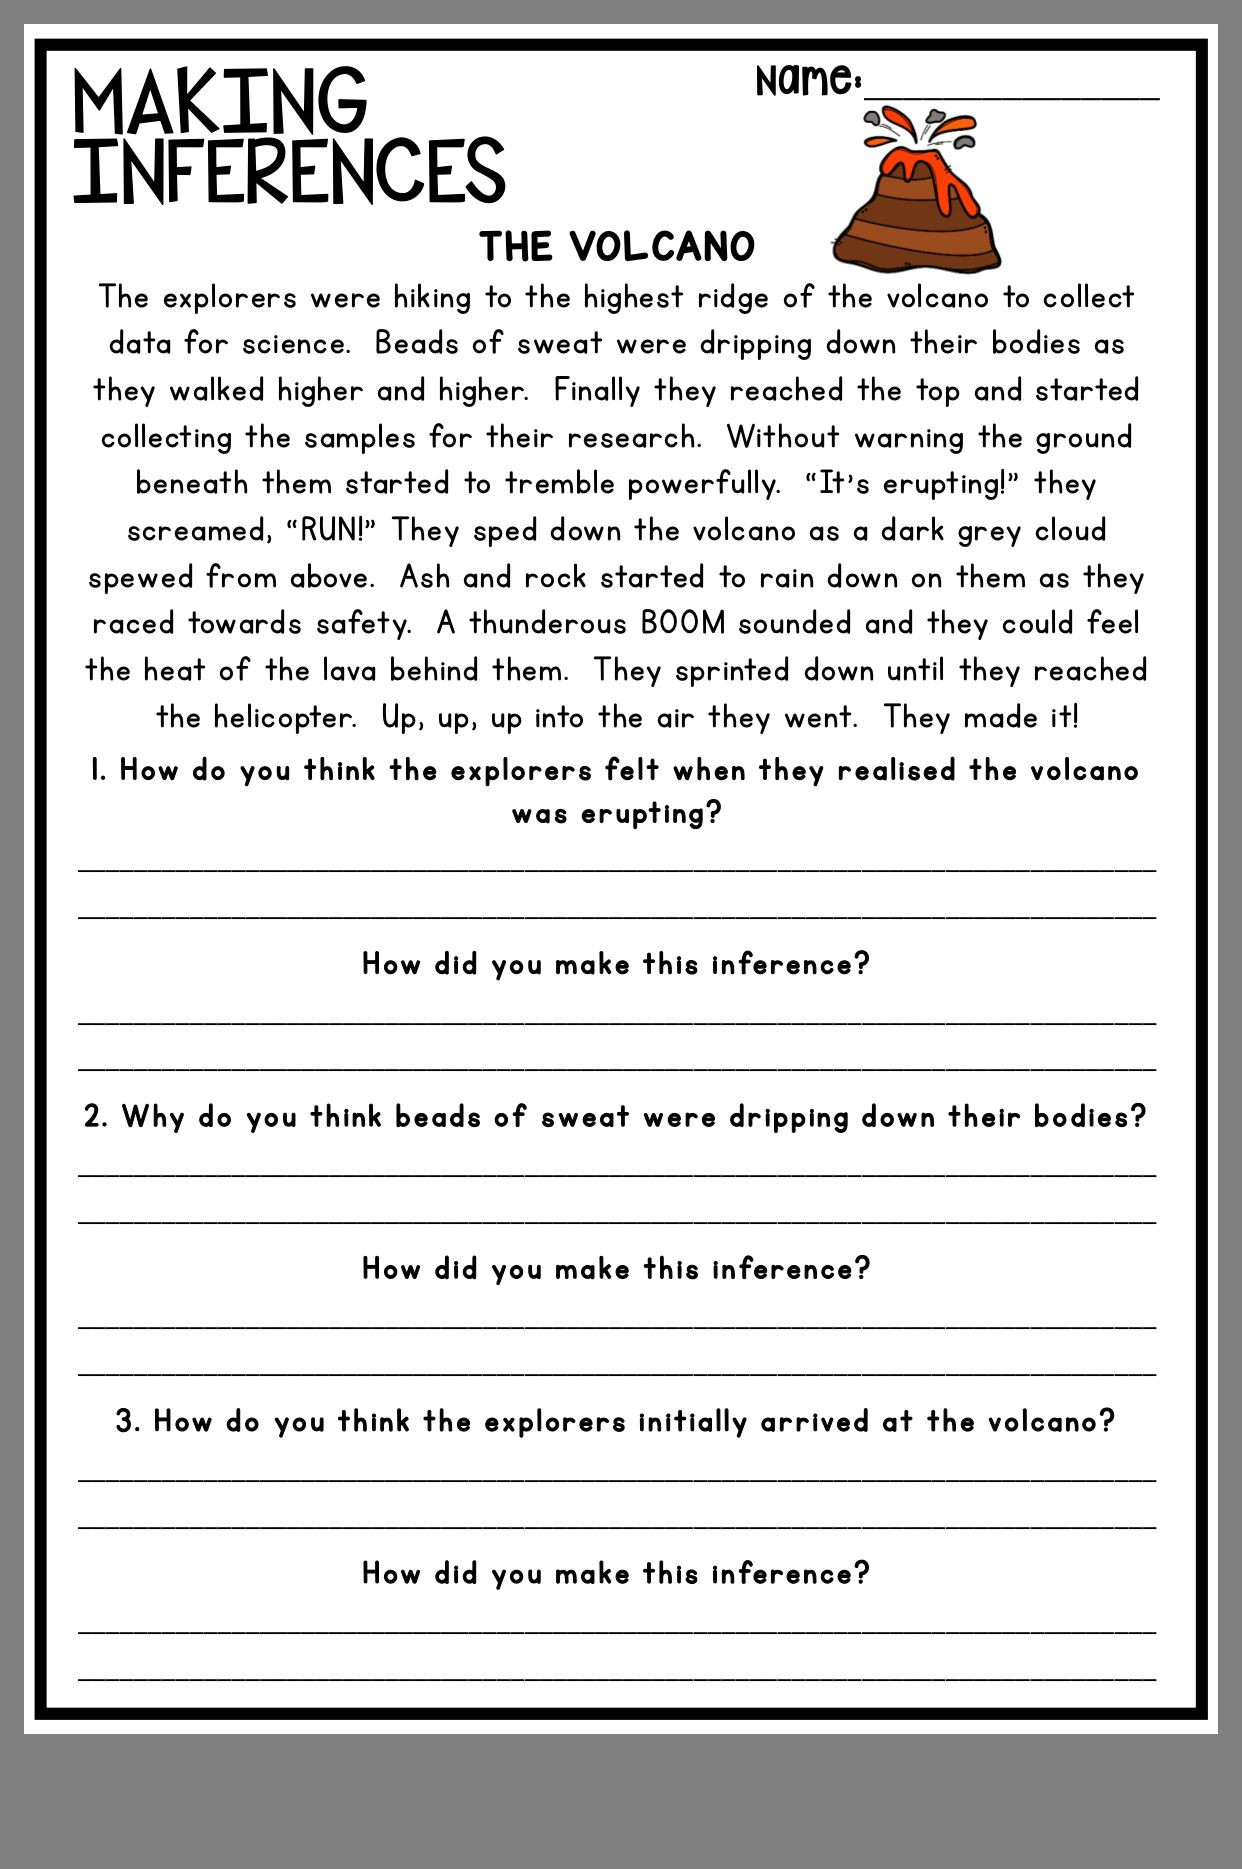 Making Inferences Worksheet 4th Grade Pin by Audrey C On A Teacher S Best Ideas